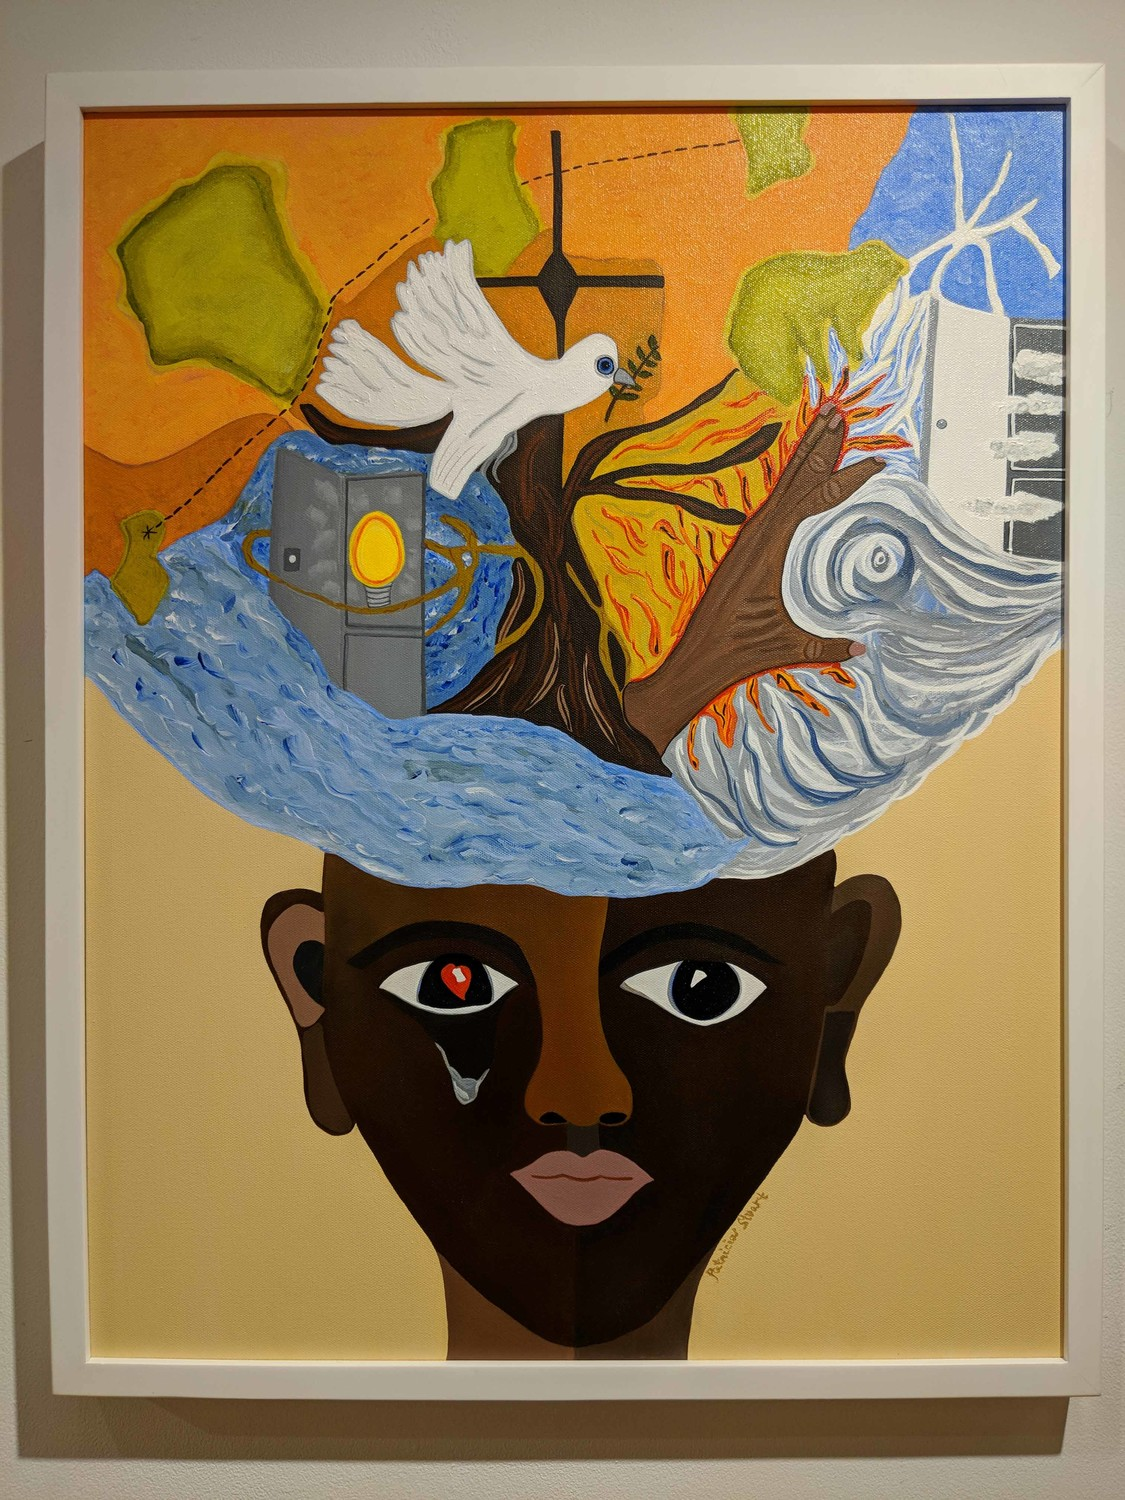 Artist Patricia Stuart lets family and religion inspire her work. Her piece 'Creative Mind' is one of many works exhibited at the Yonkers Public Library's Riverfront Art Gallery through Feb. 21.